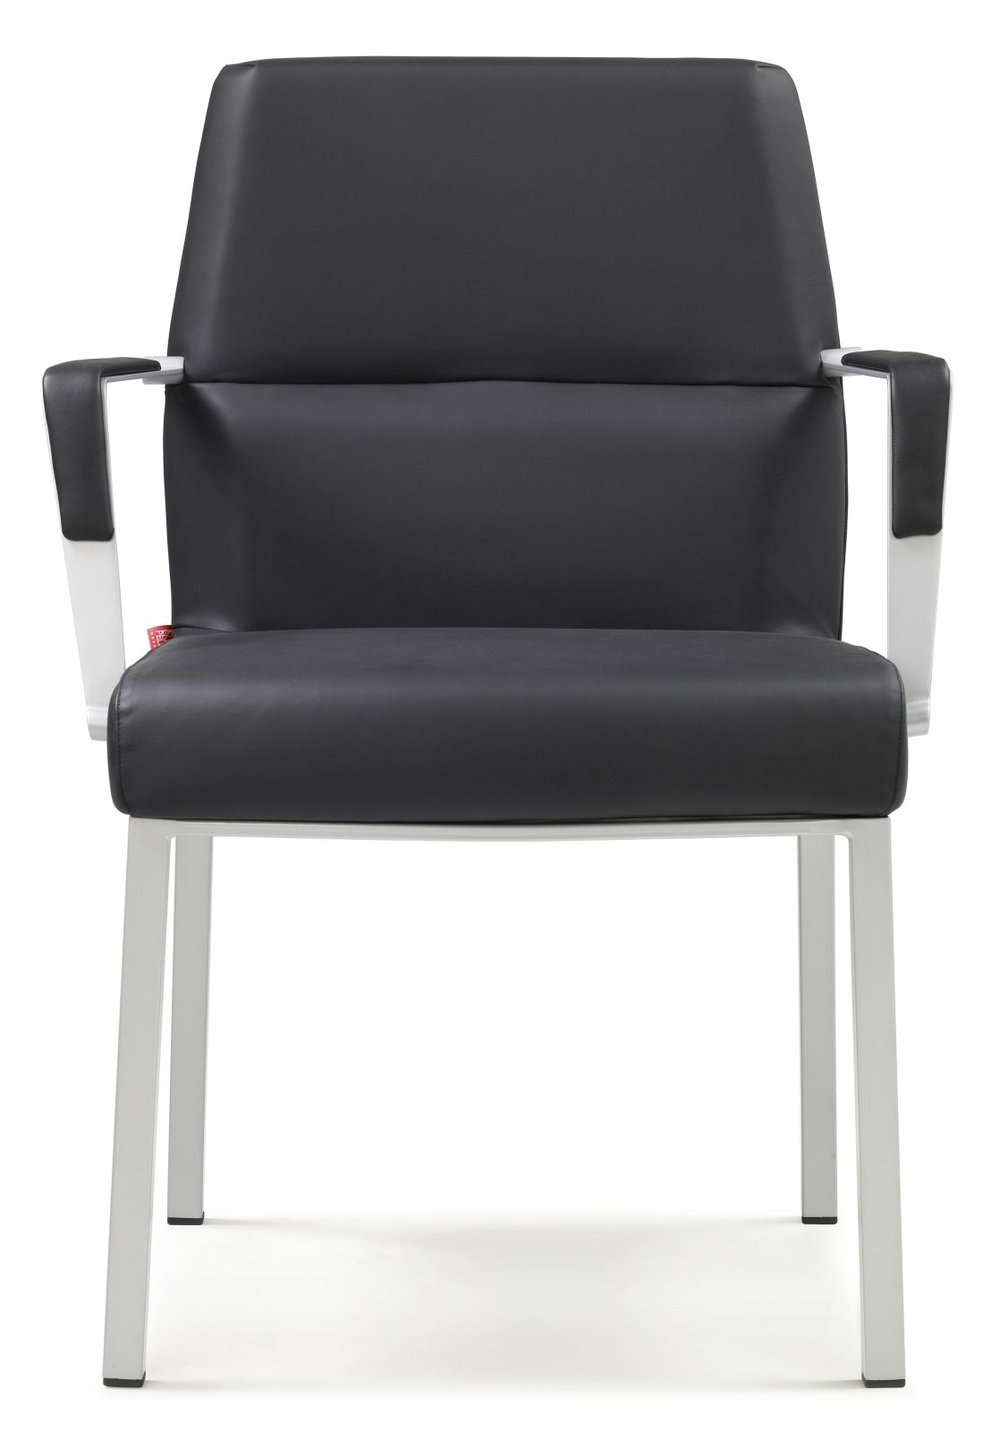 MOF 111 Modern Office Chair